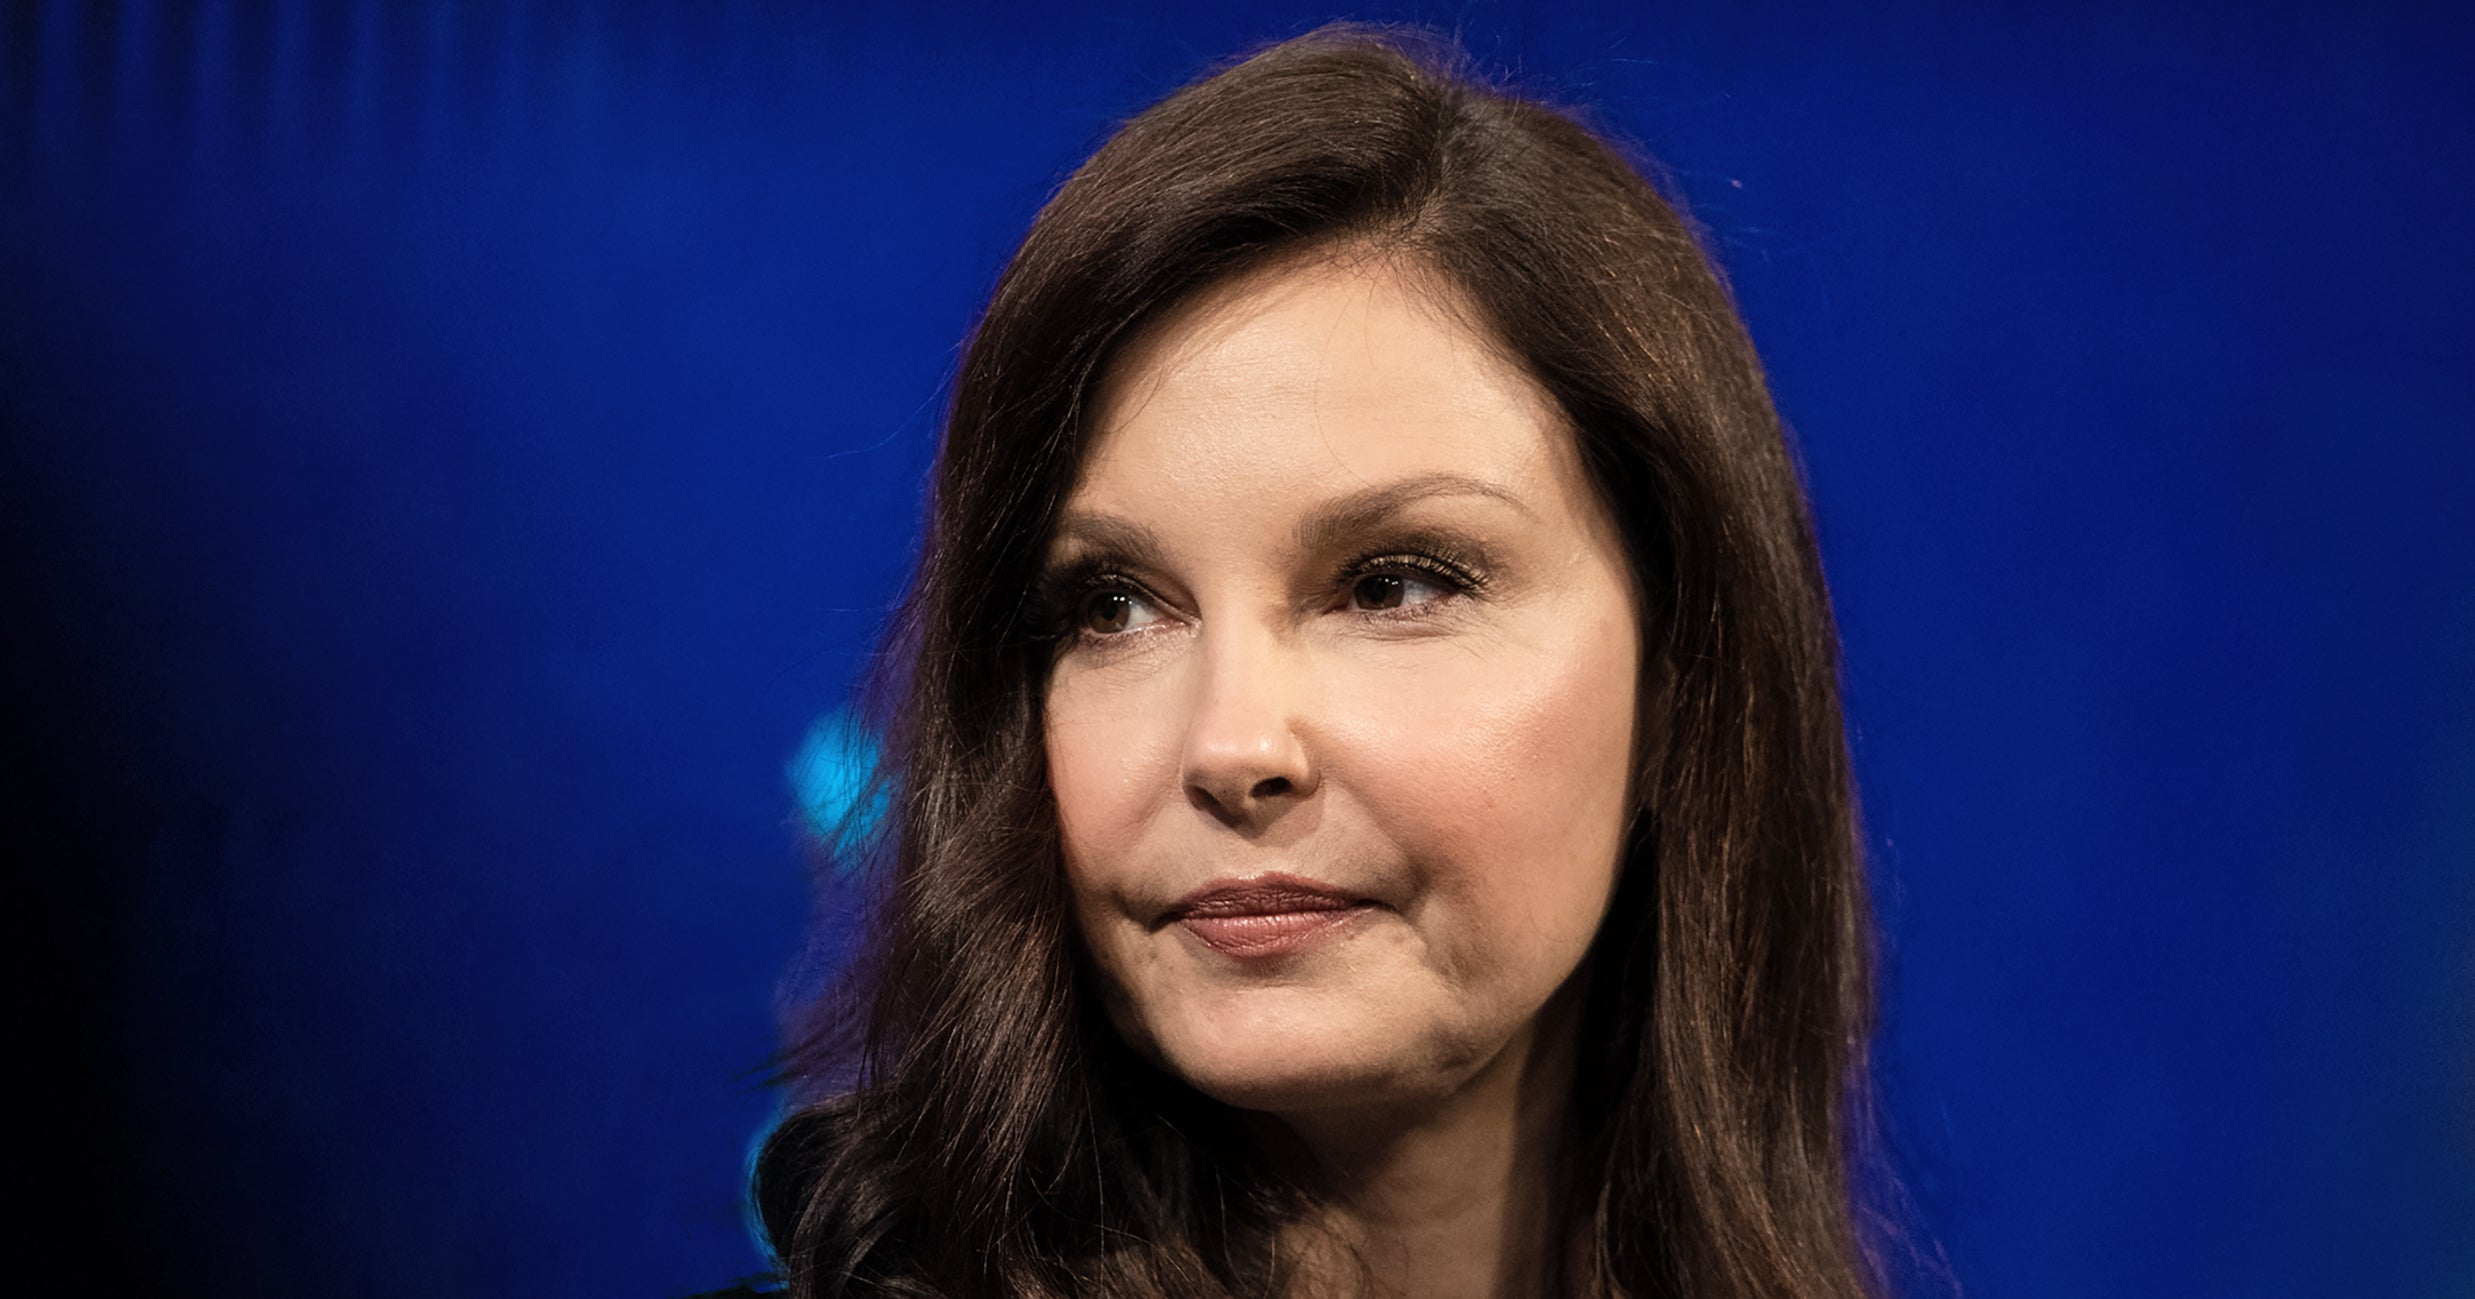 People Are Posting Prednisone Photos After Ashley Judd Was Face Shamed